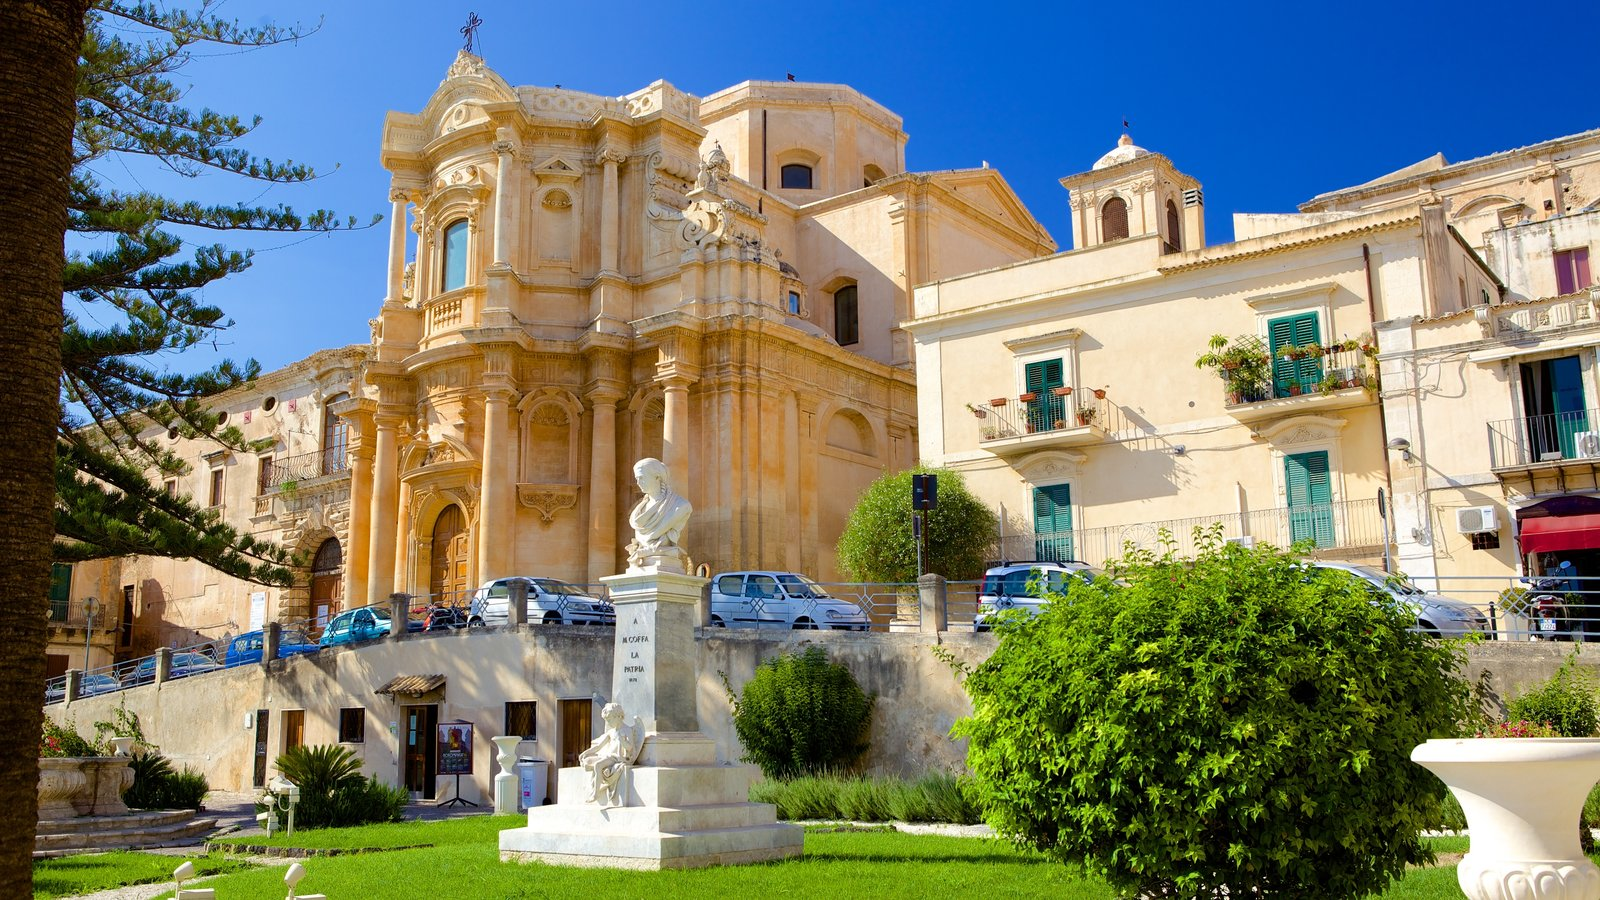 Noto featuring heritage elements and a castle